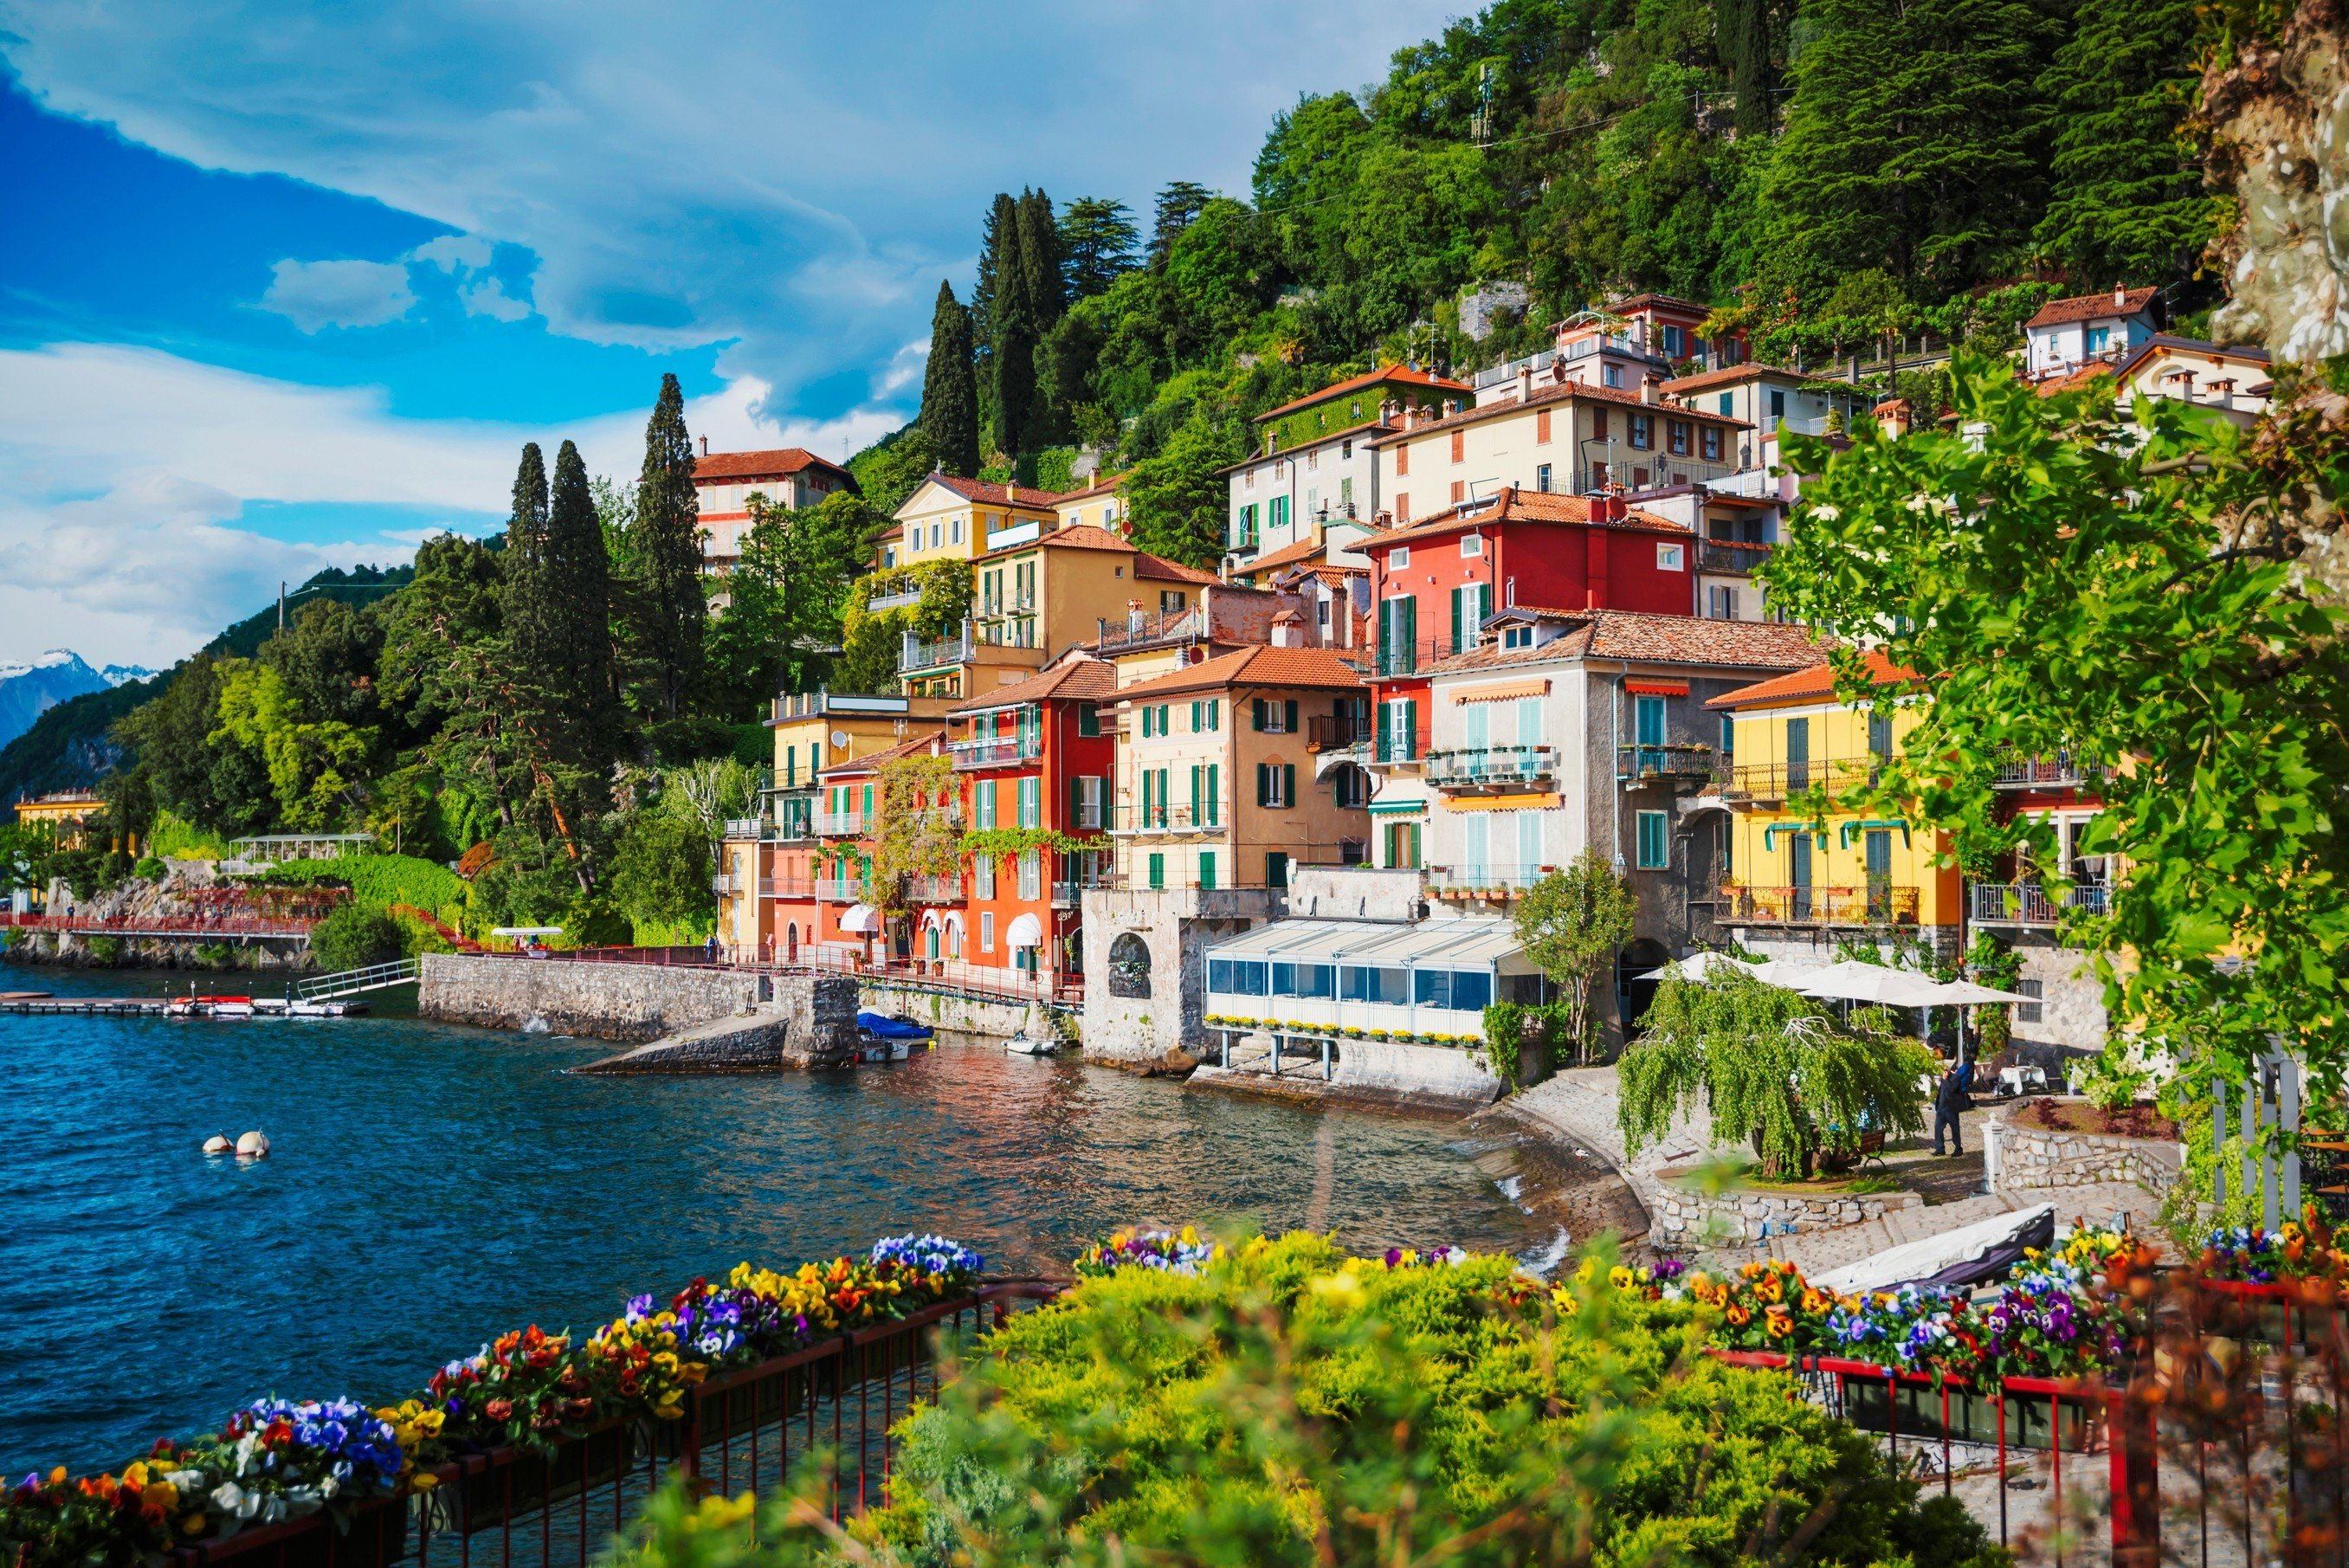 Jetsetter Guides tree outdoor water Town geographical feature landform scene Boat Village vacation human settlement River tourism Harbor Coast waterway Sea cityscape colorful surrounded